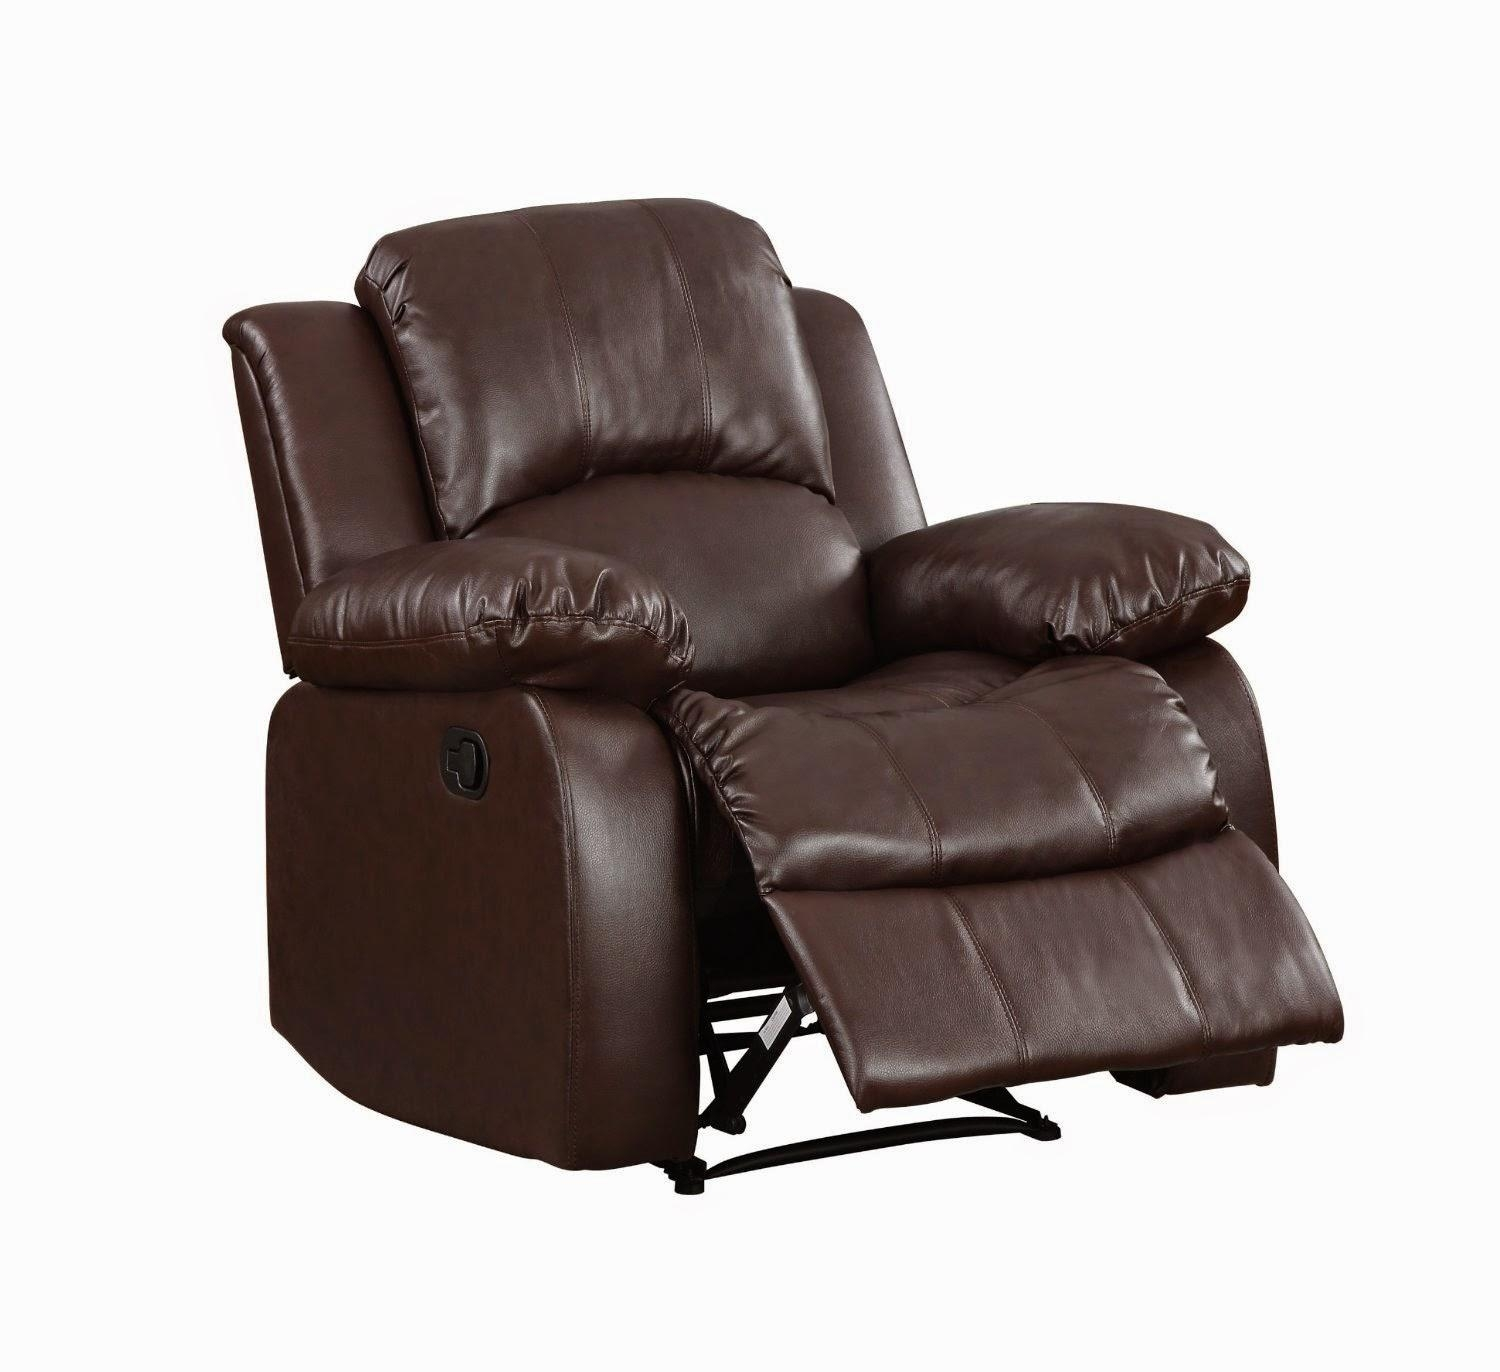 Sofas Center : Costco Pulaski Leather Reclining Sofa Berkline In Berkline Couches (Image 11 of 20)